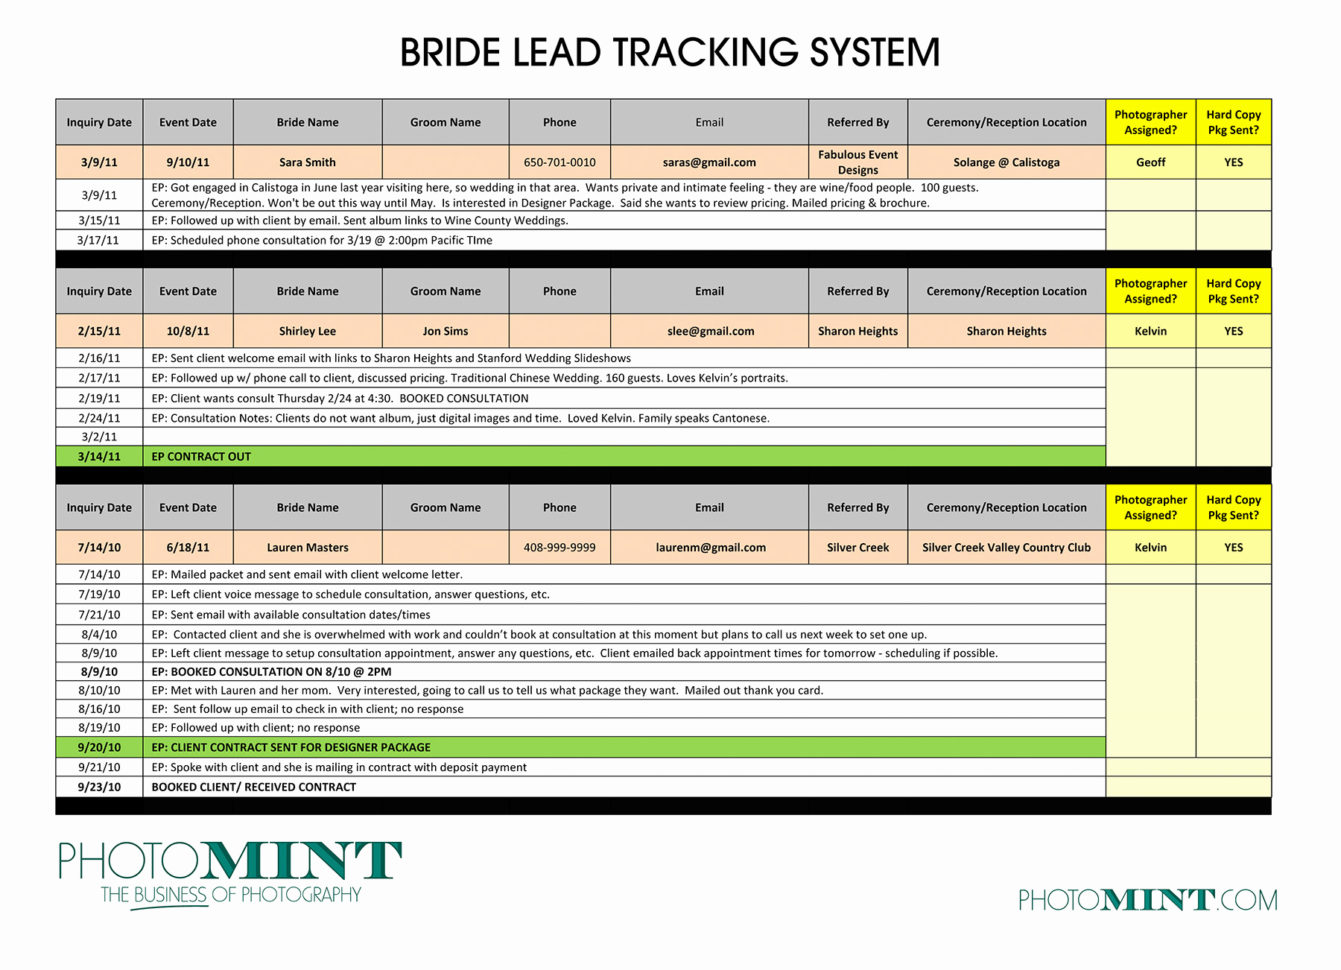 Sales Activity Tracking Spreadsheet Beautiful Goal Tracker With Sales Lead Tracking Excel Template Free